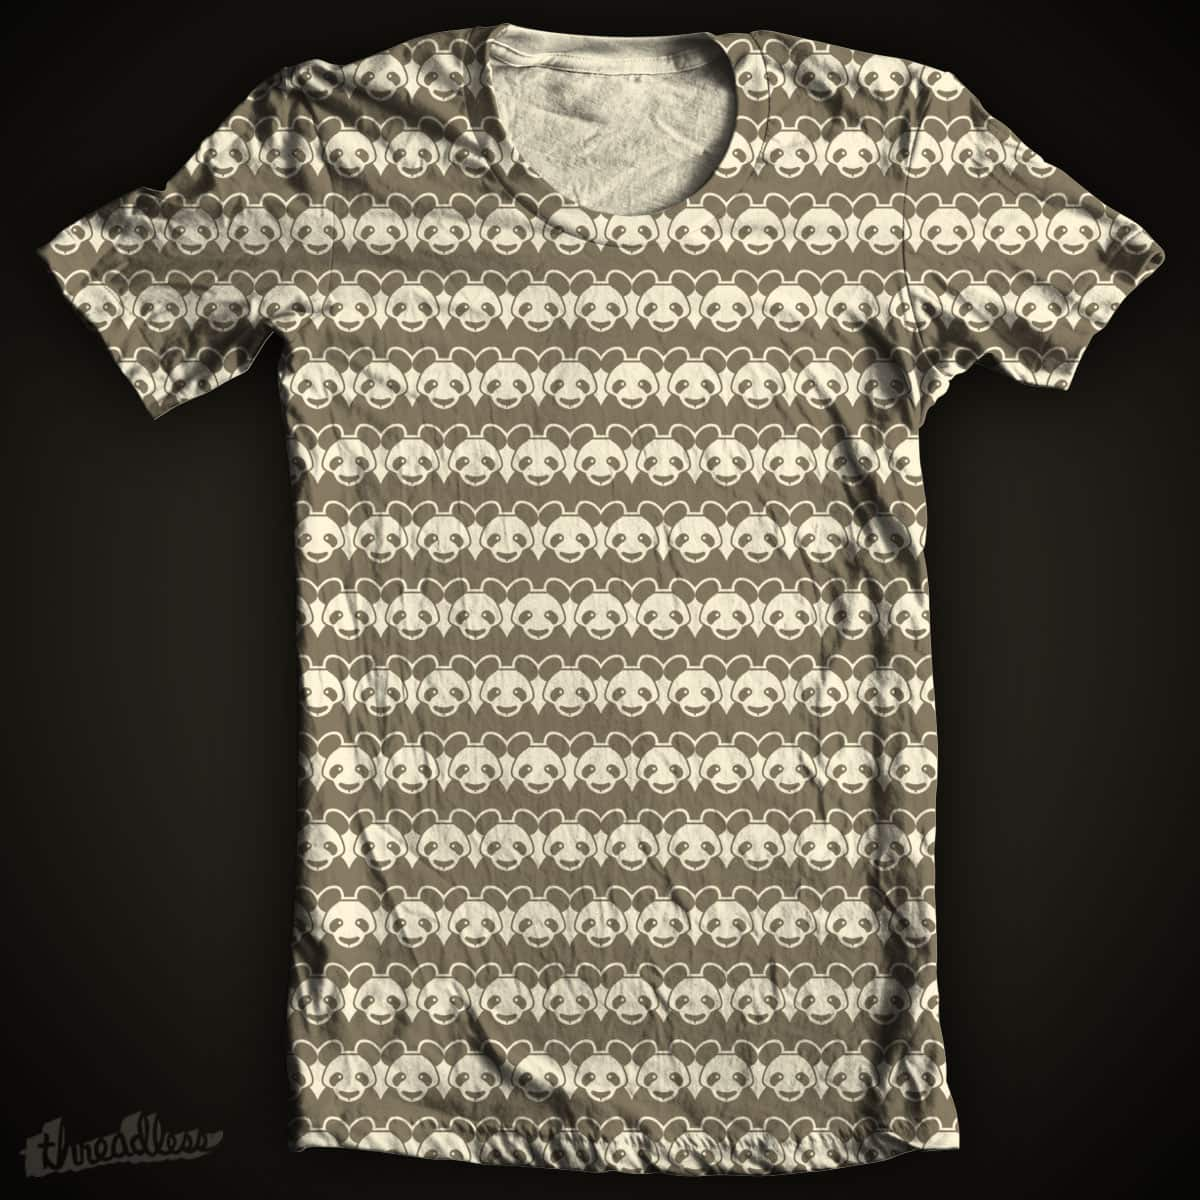 Panddern by tobiasfonseca on Threadless